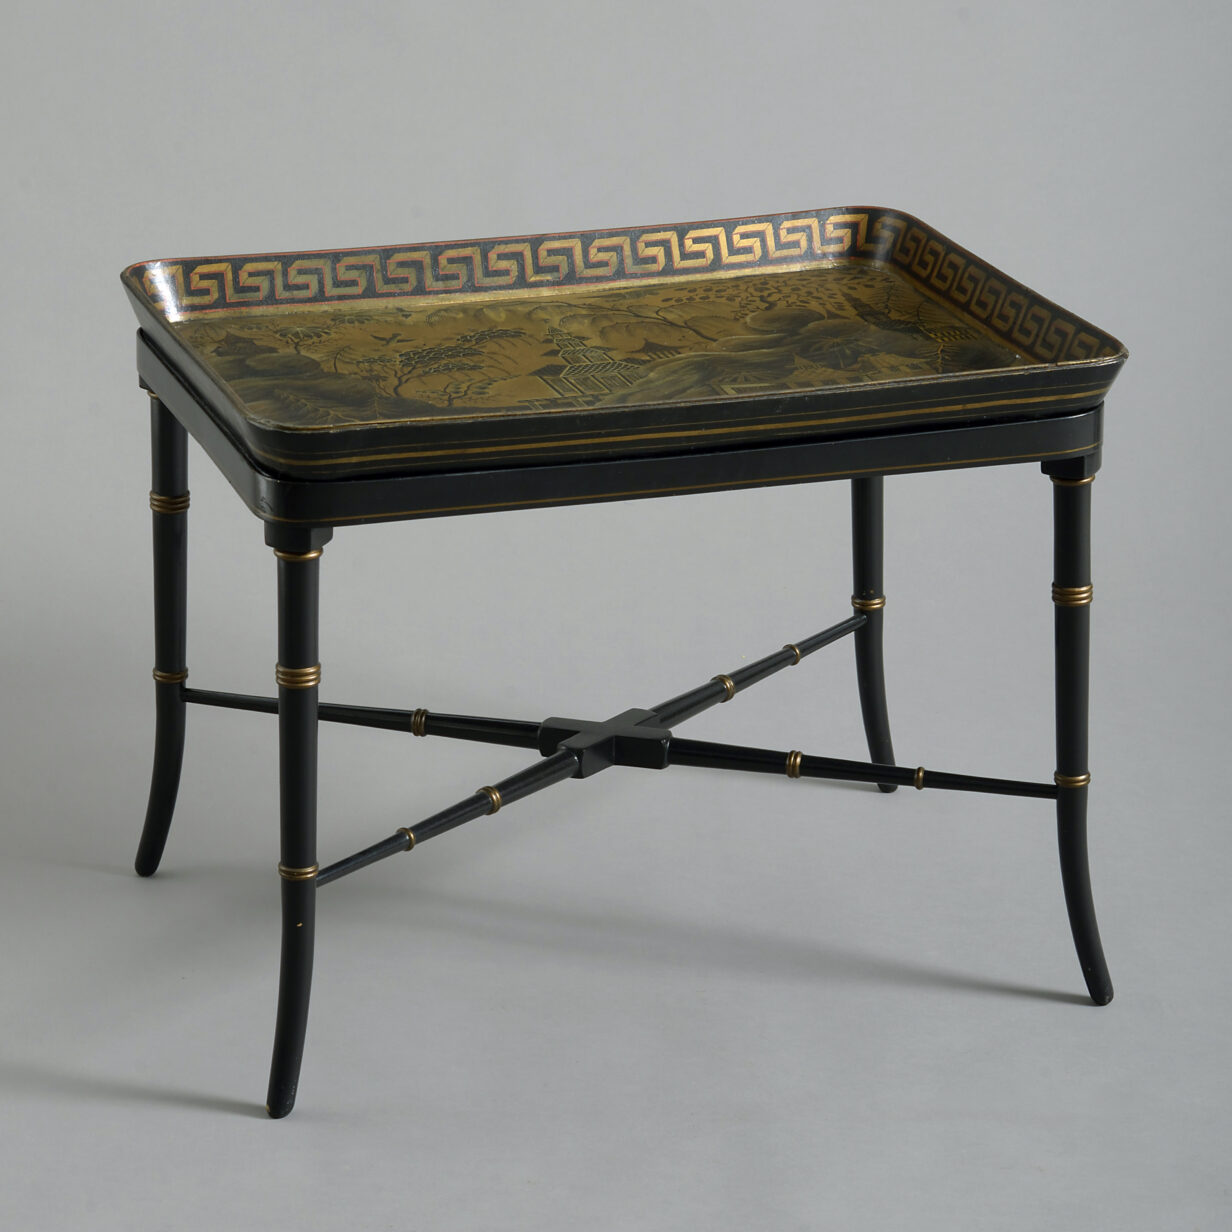 Regency Chinoiseire Tray Table